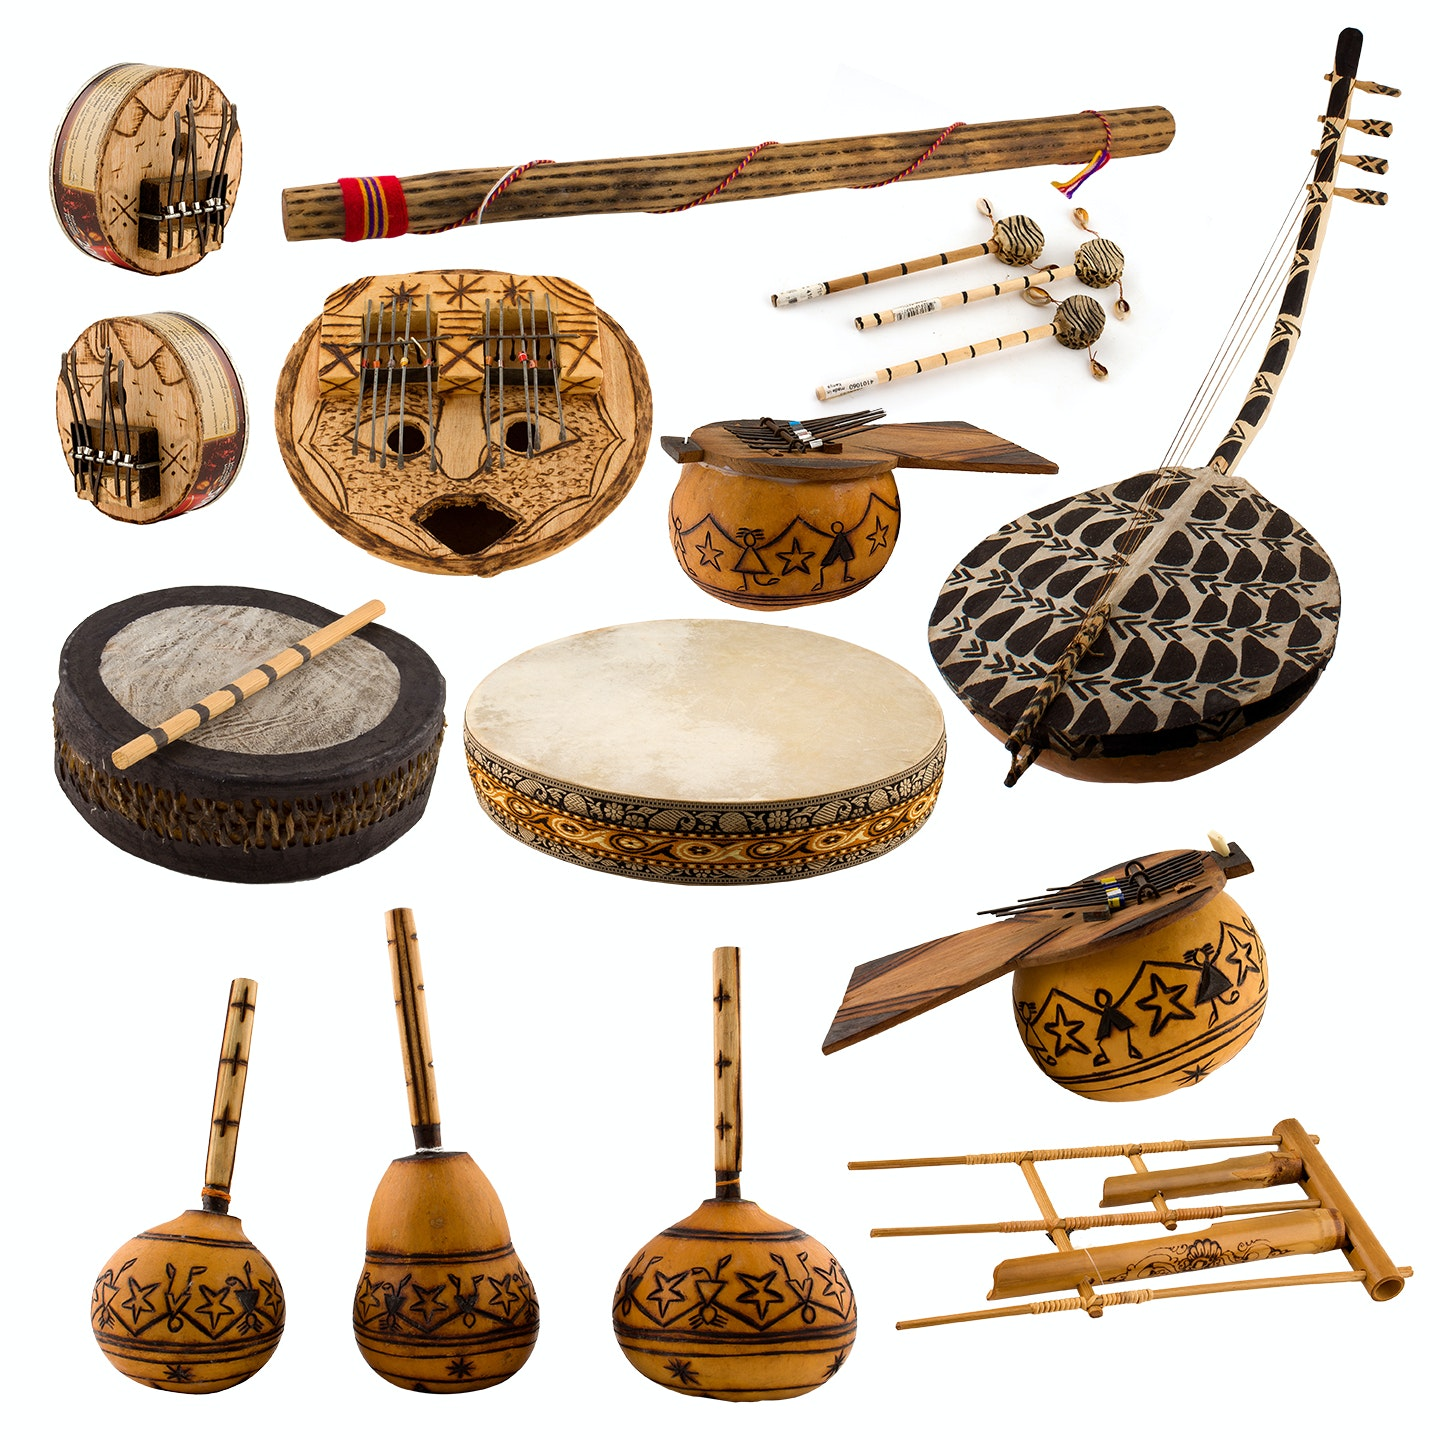 Large Assortment of Handcrafted African Instruments from Ten Thousand Villages